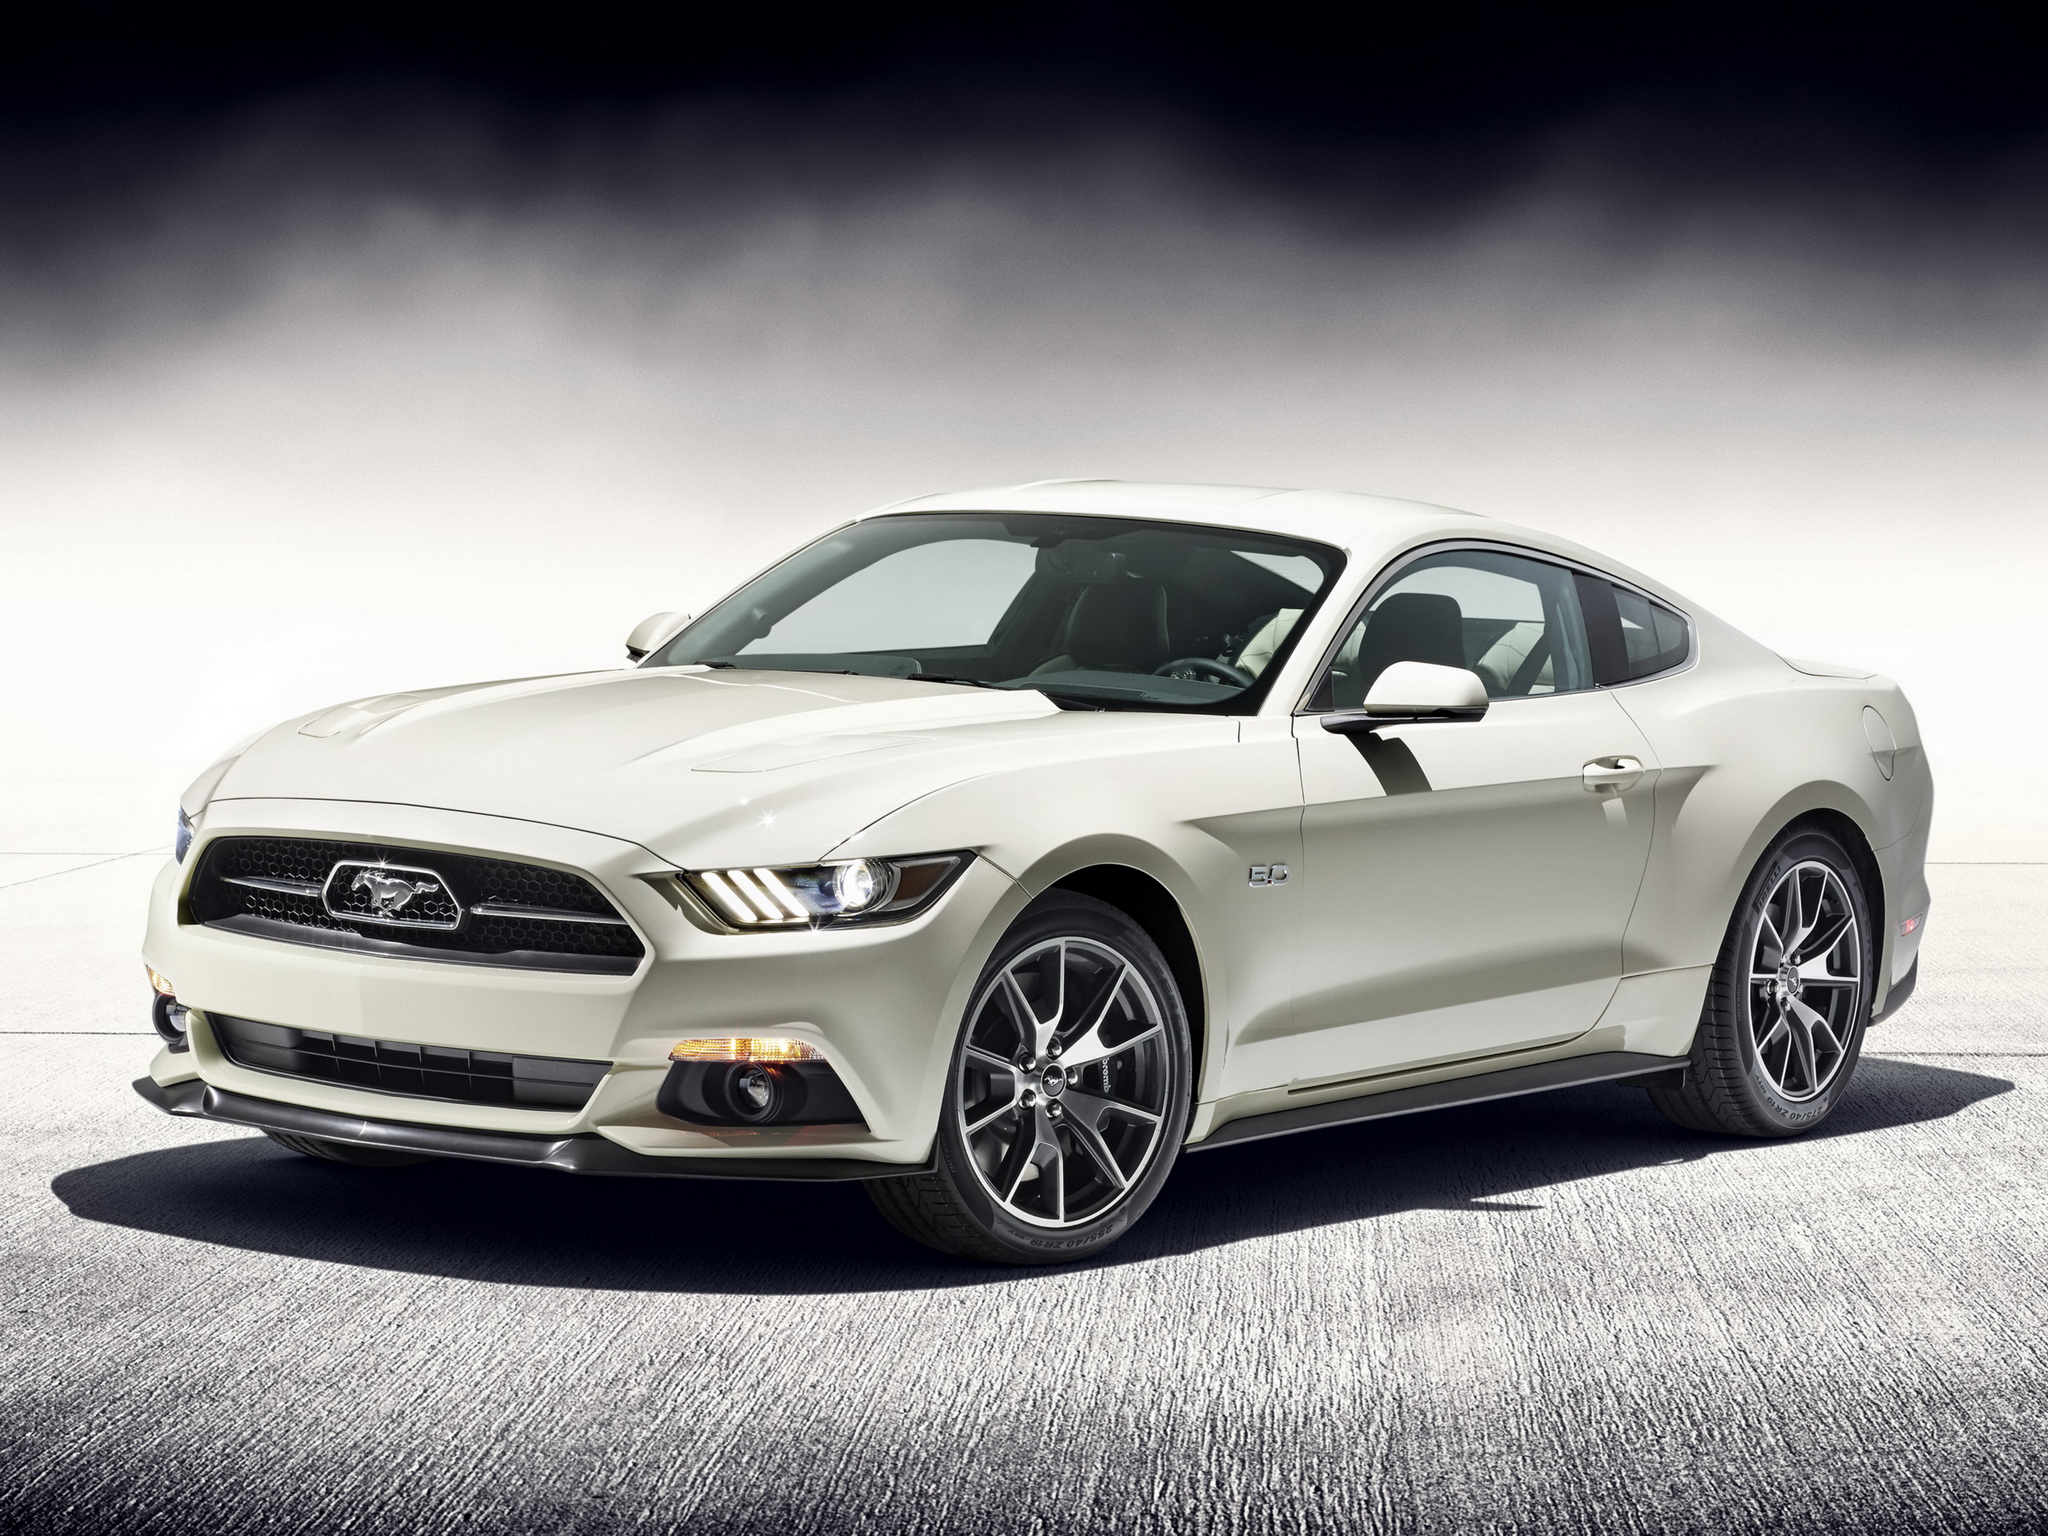 Ford Mustang - Autovisie.nl